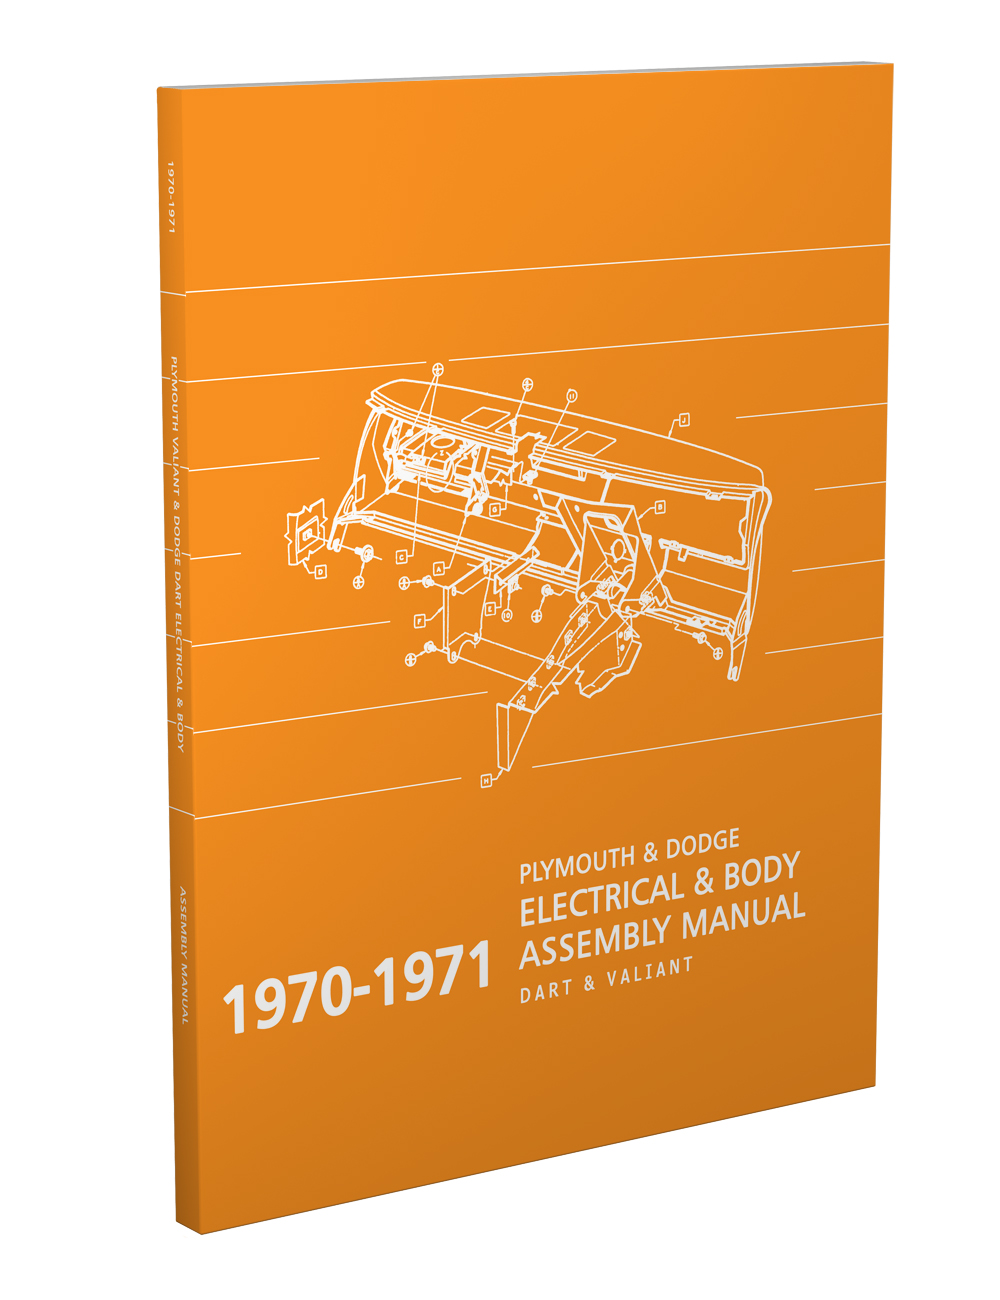 hight resolution of 1970 1971 dart and valiant electrical and body assembly manual reprint